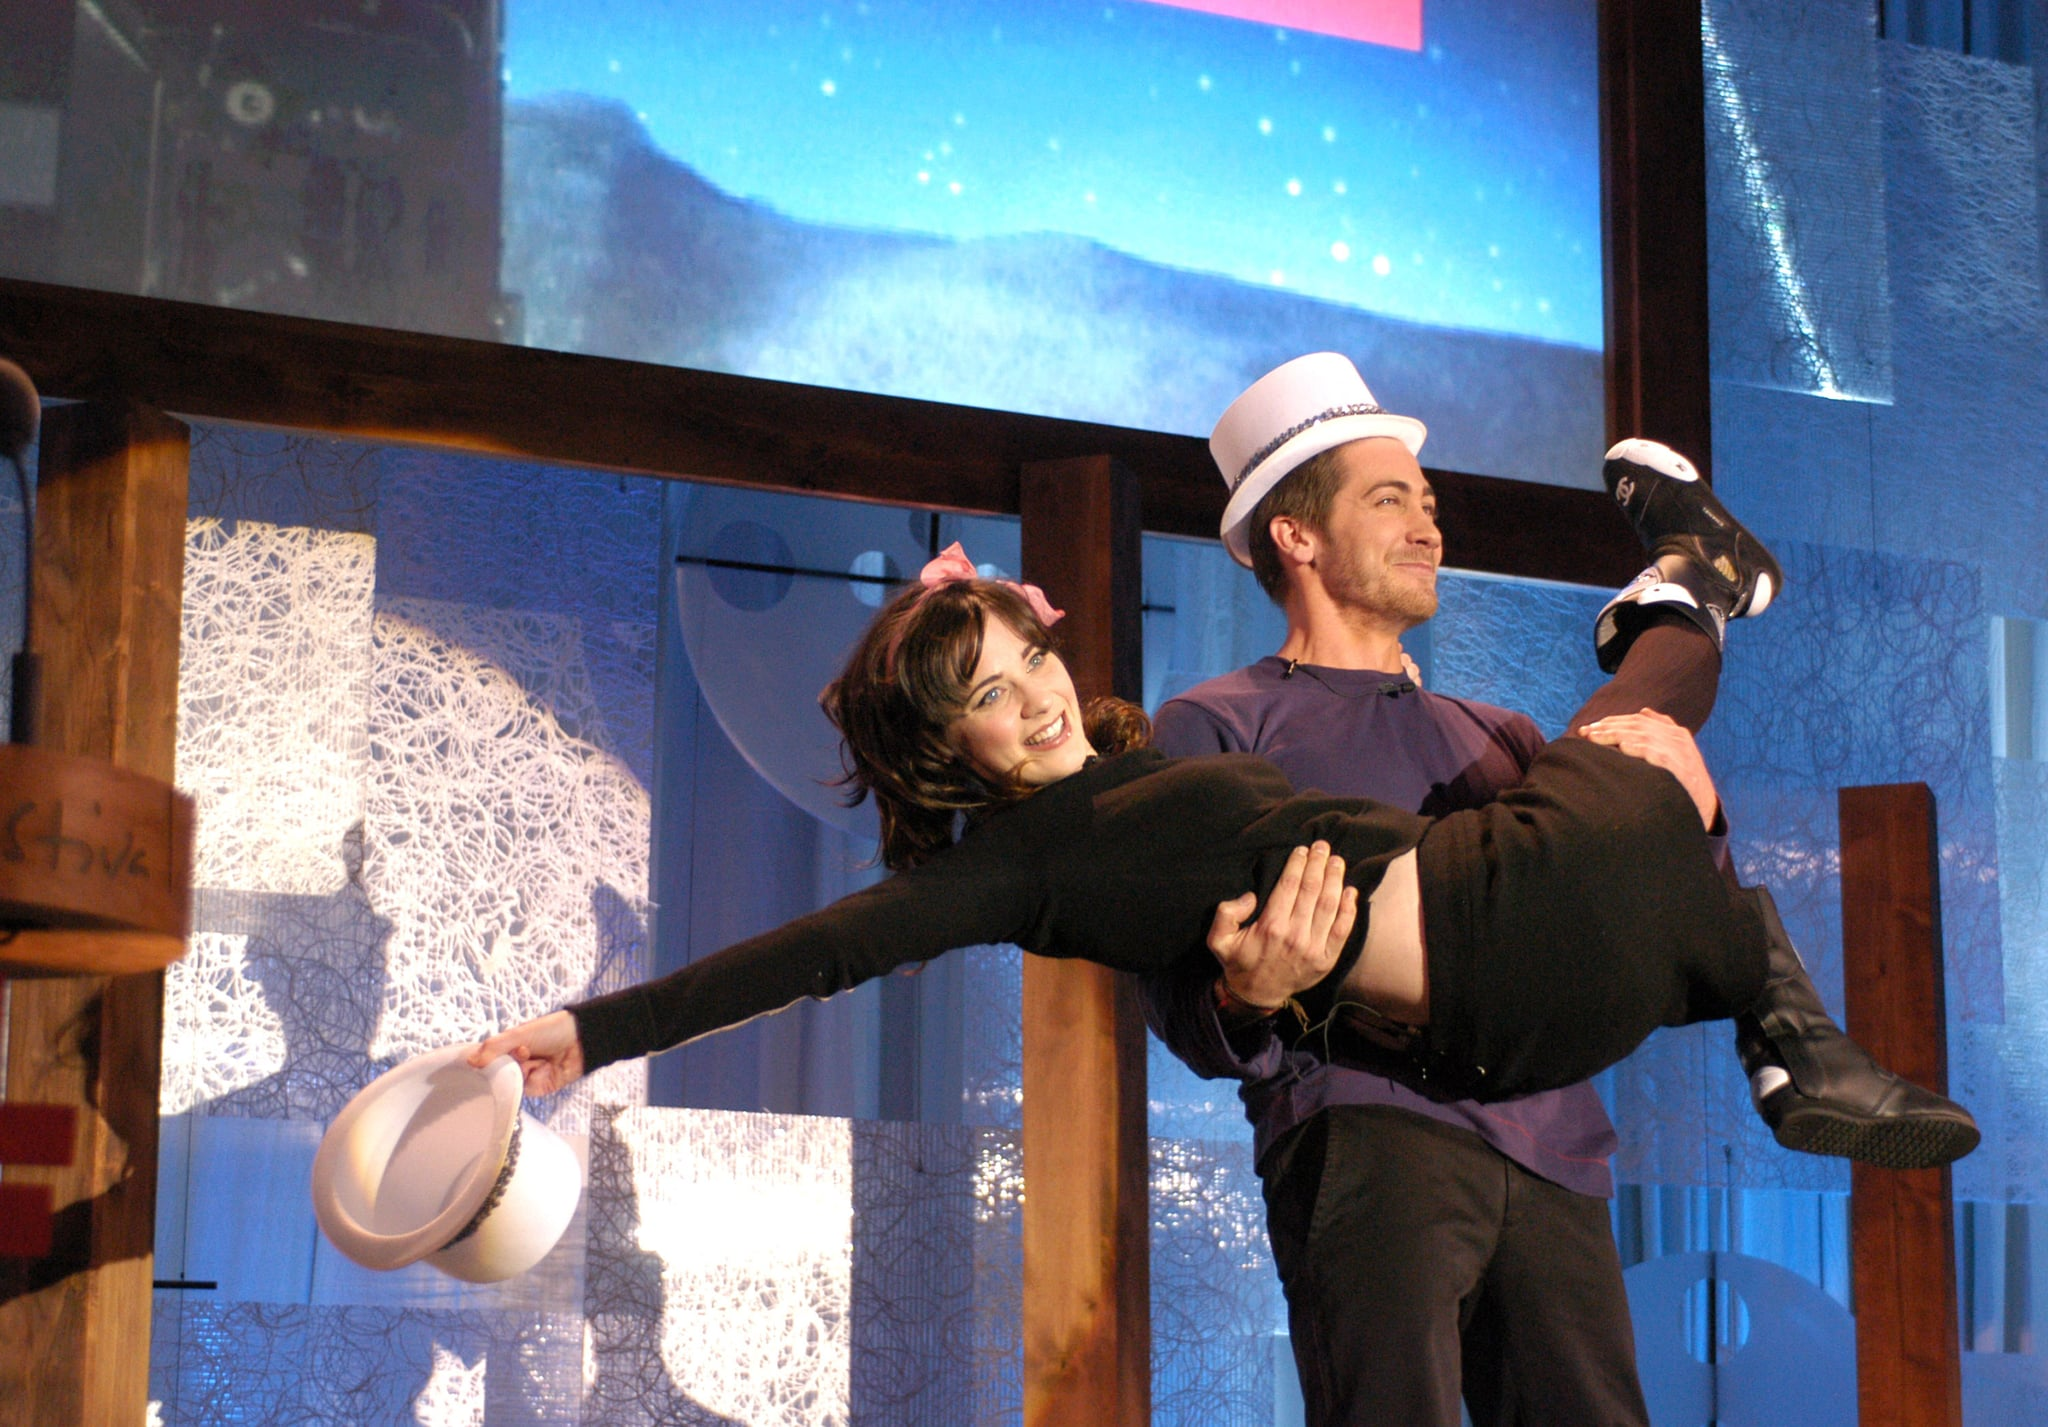 He and Zooey Deschanel performed a silly skit together during the 2004 Sundance Film Festival Awards.